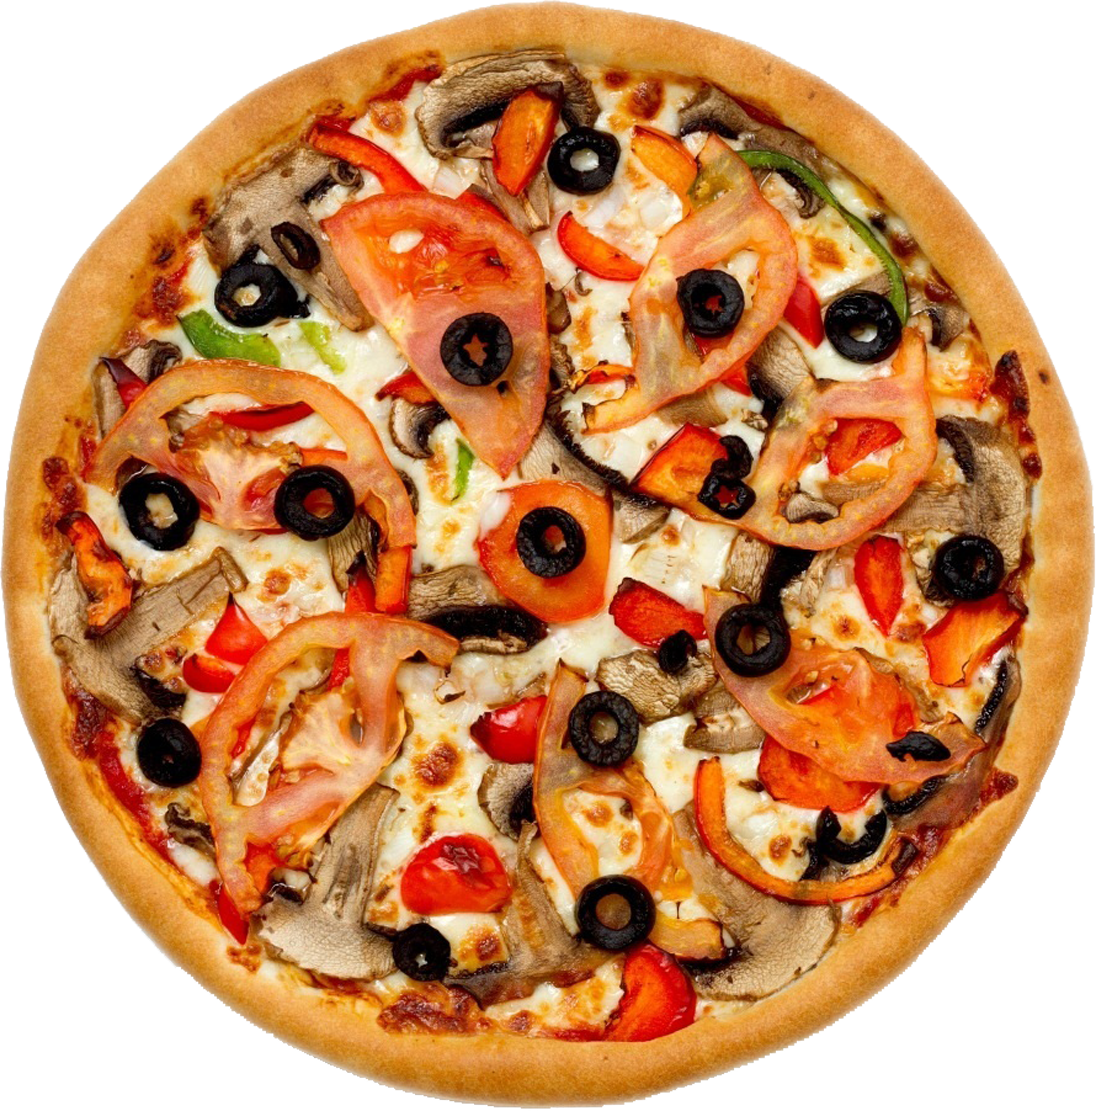 Olive Mixed Pizza Png image #19323